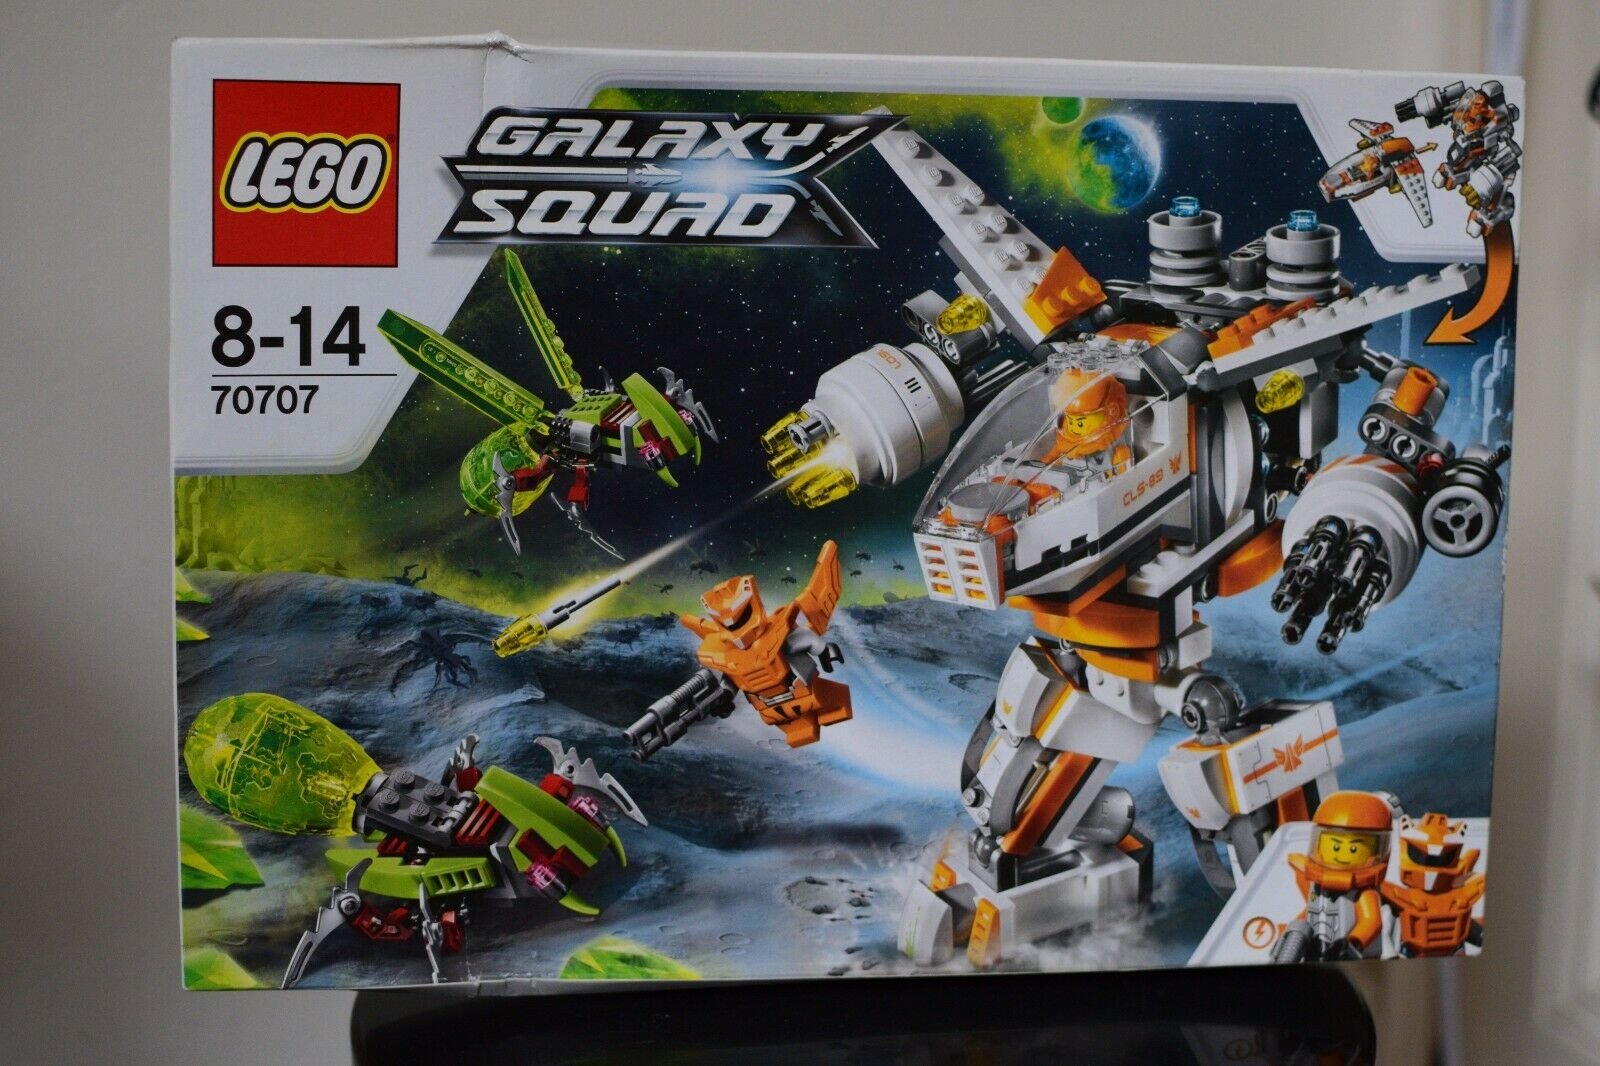 LEGO Galaxy Squad 70707  CLS-89 ERADICATOR BRAND NEW SEALED ACTUAL TOY PHOTOS